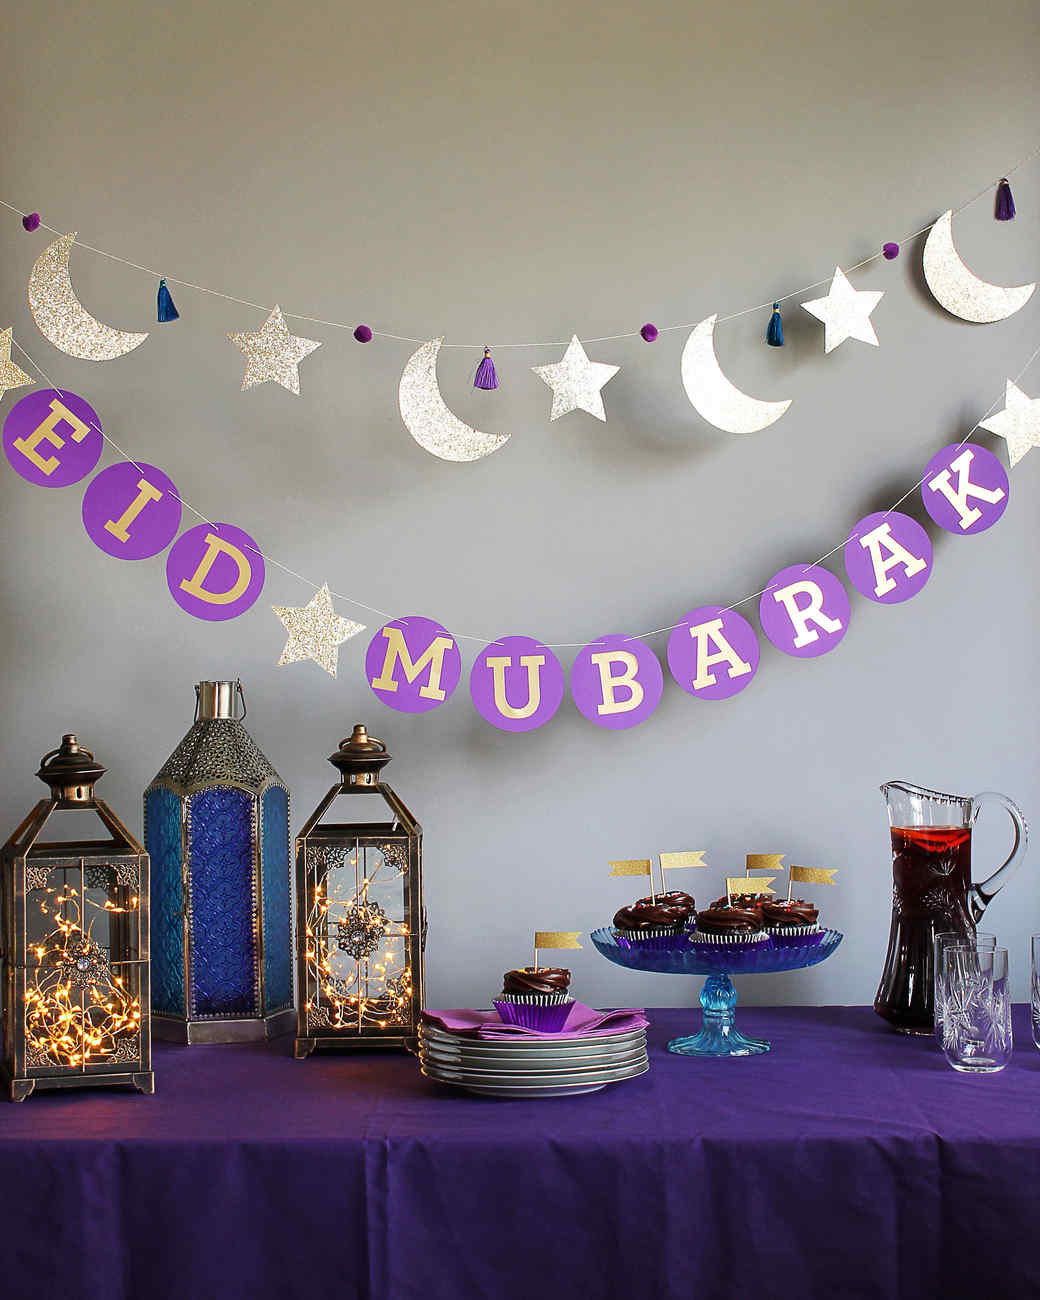 5 Elegant Eid al-Fitr Ideas We Love